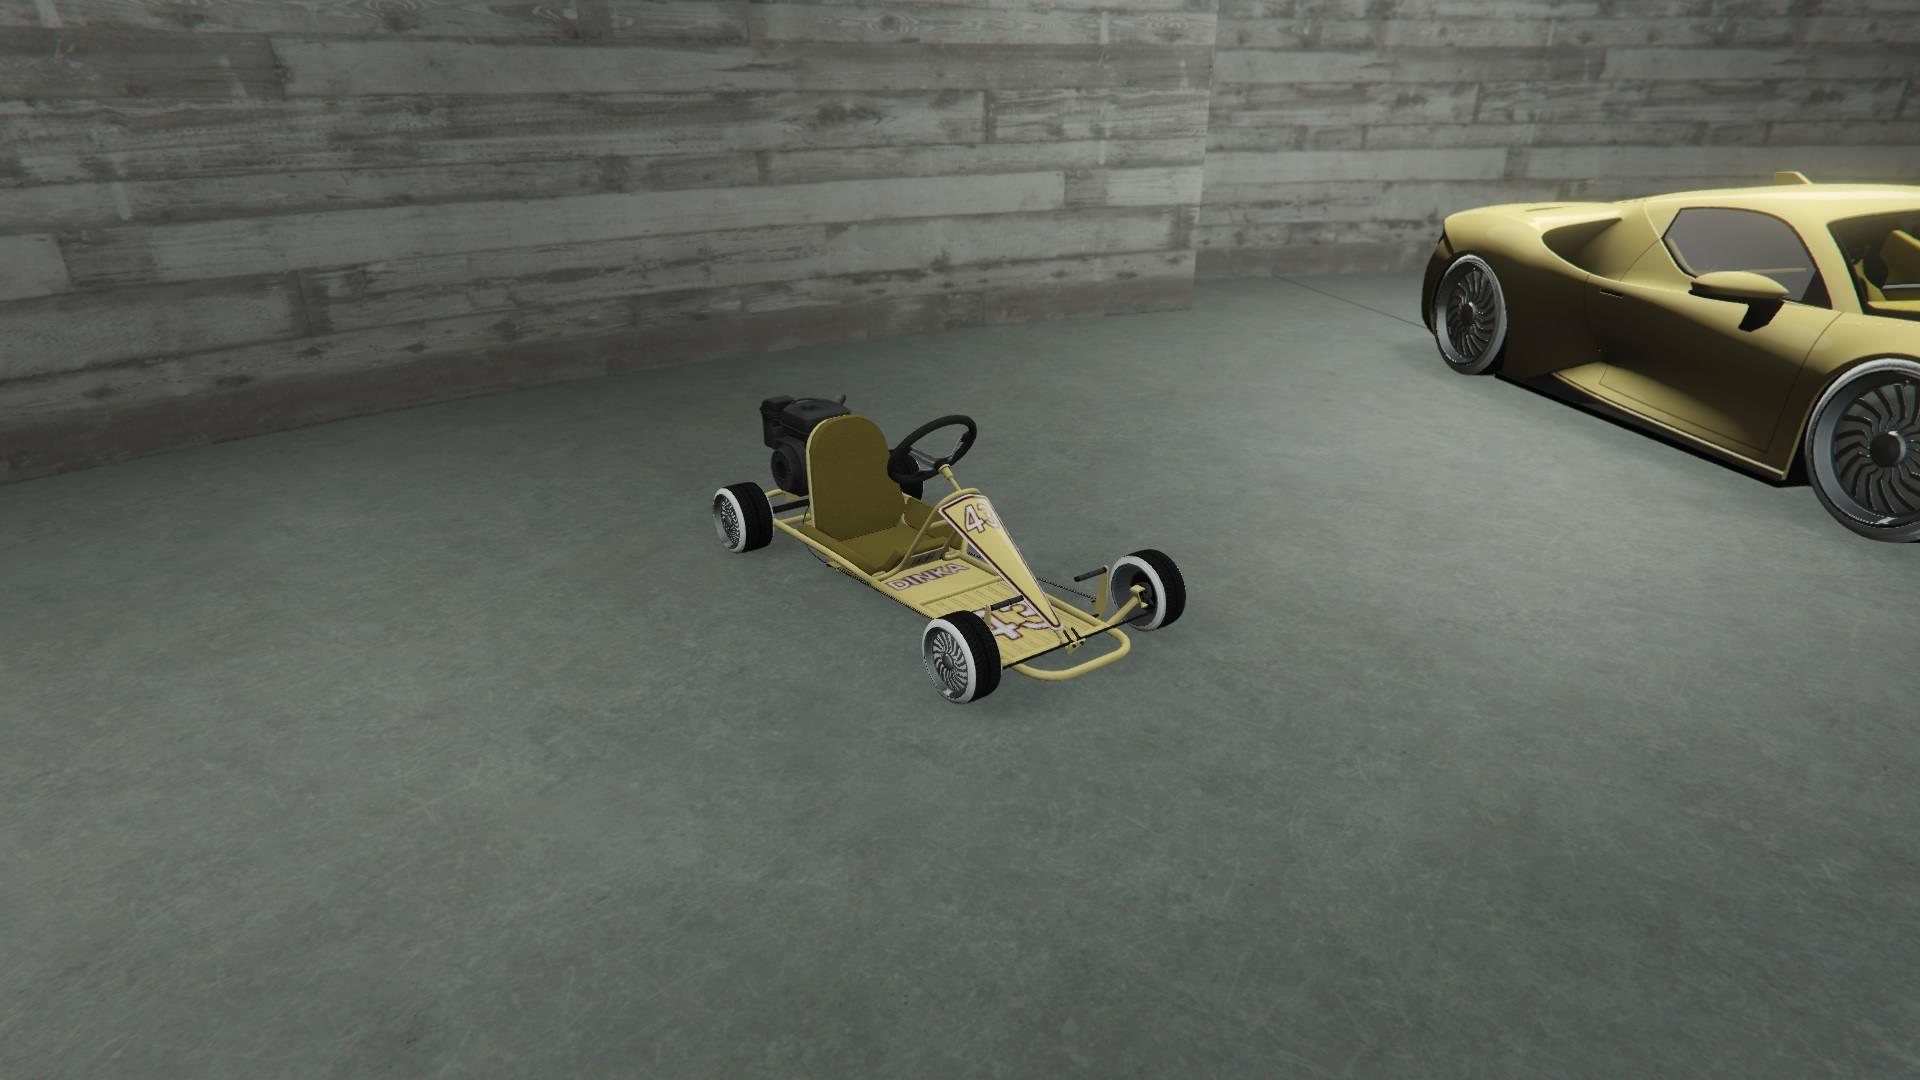 Veto Classic (Go-Kart) - Light yellow paint with pure white rim color.